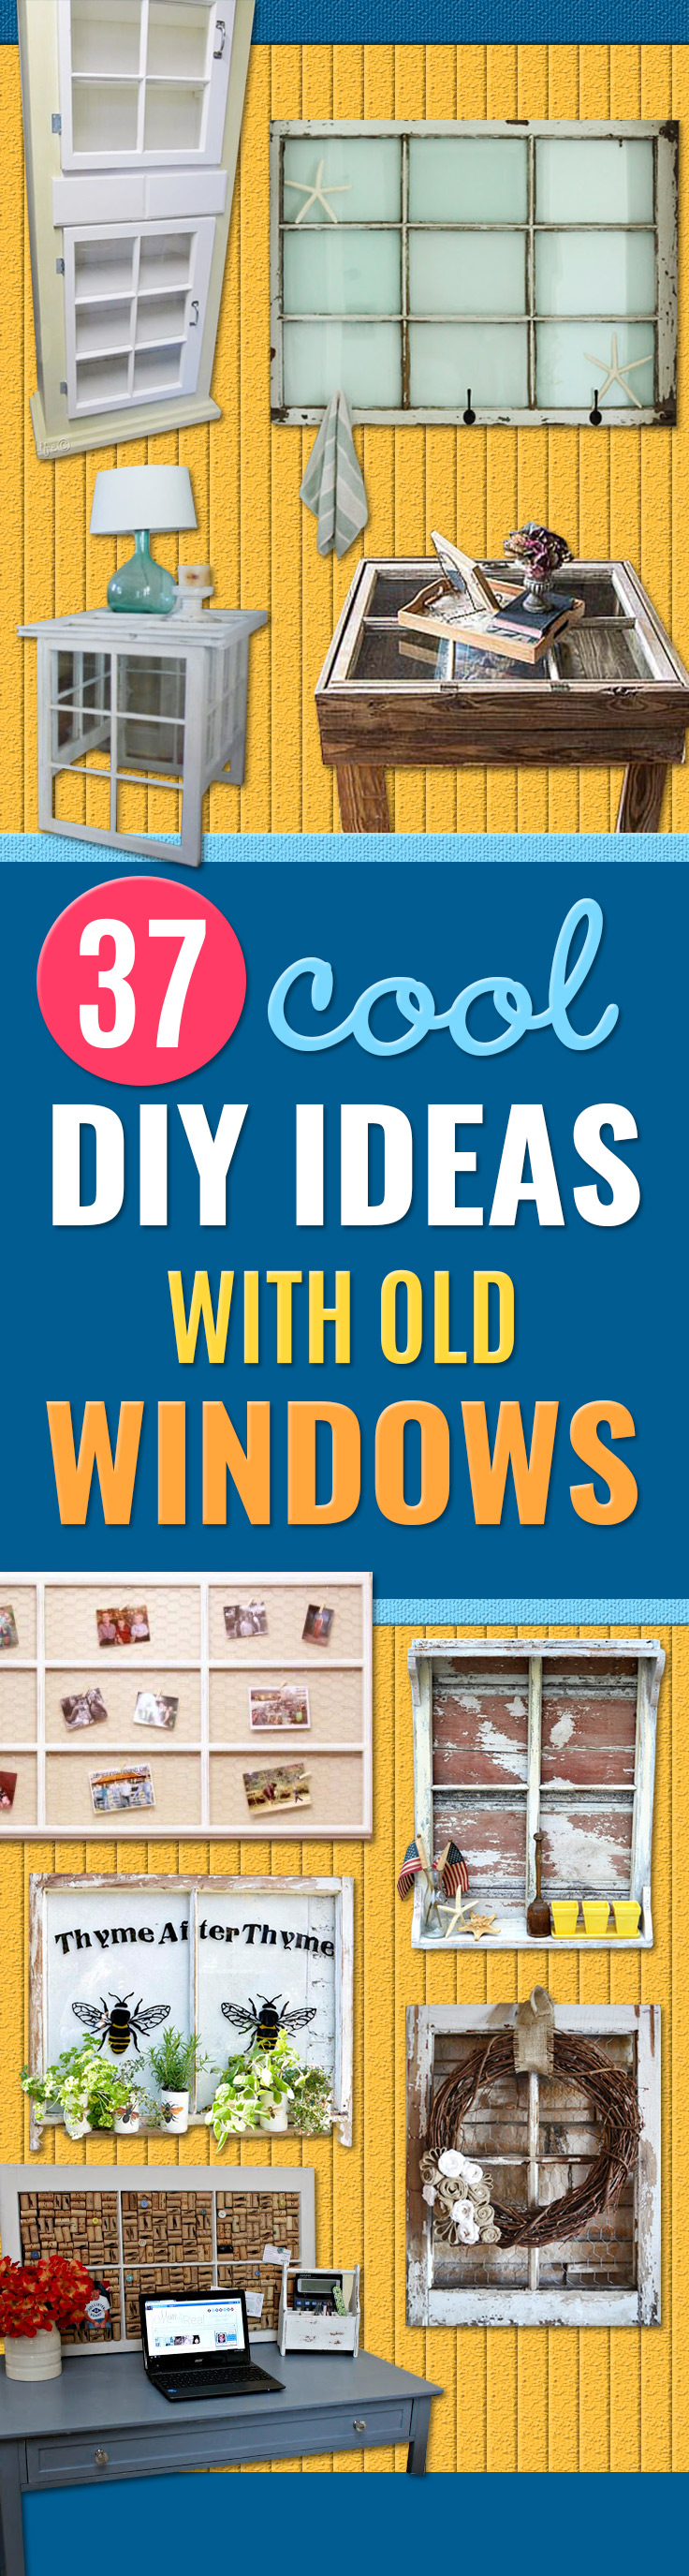 DIY Ideas With Old Windows - Rustic Farmhouse Decor Tutorials and Projects Made With An Old Window - Easy Vintage Shelving, Coffee Table, Towel Hook, Wall Art, Picture Frames and Home Decor for Kitchen, Living Room and Bathroom - Creative Country Crafts, Seating, Furniture, Patio Decor and Rustic Wall Art and Accessories to Make and Sell http://diyjoy.com/diy-projects-old-windows